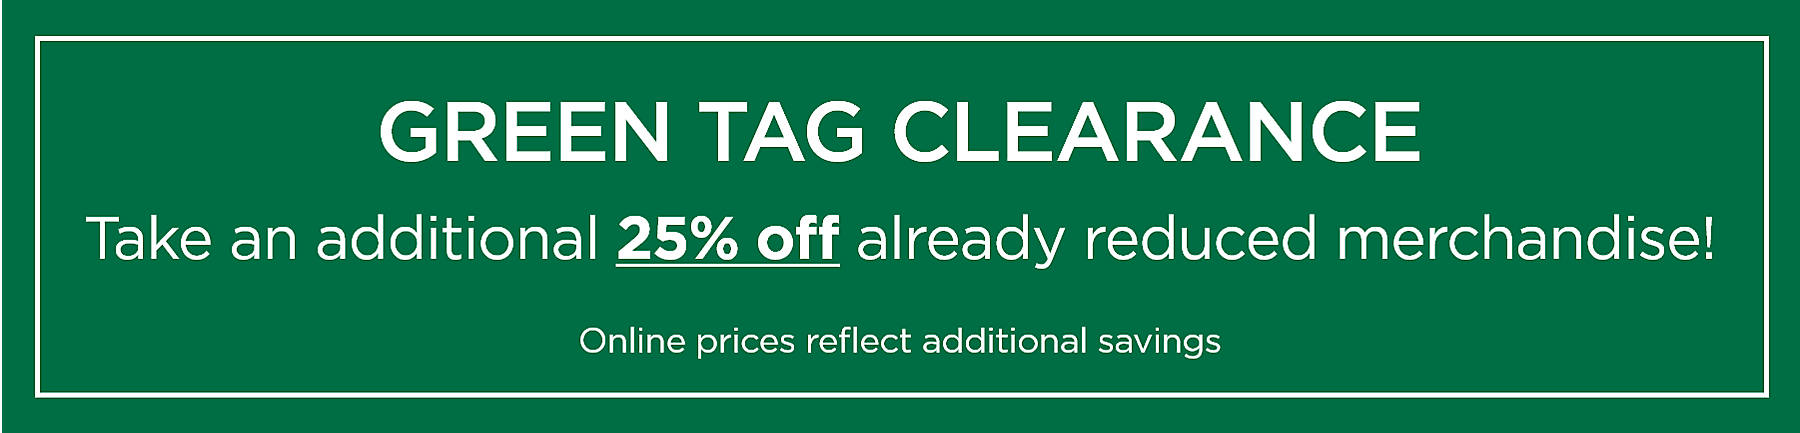 Green Tag Clearance Take an additional 25% off already reduced merchandise! Online prices reflect additional savings